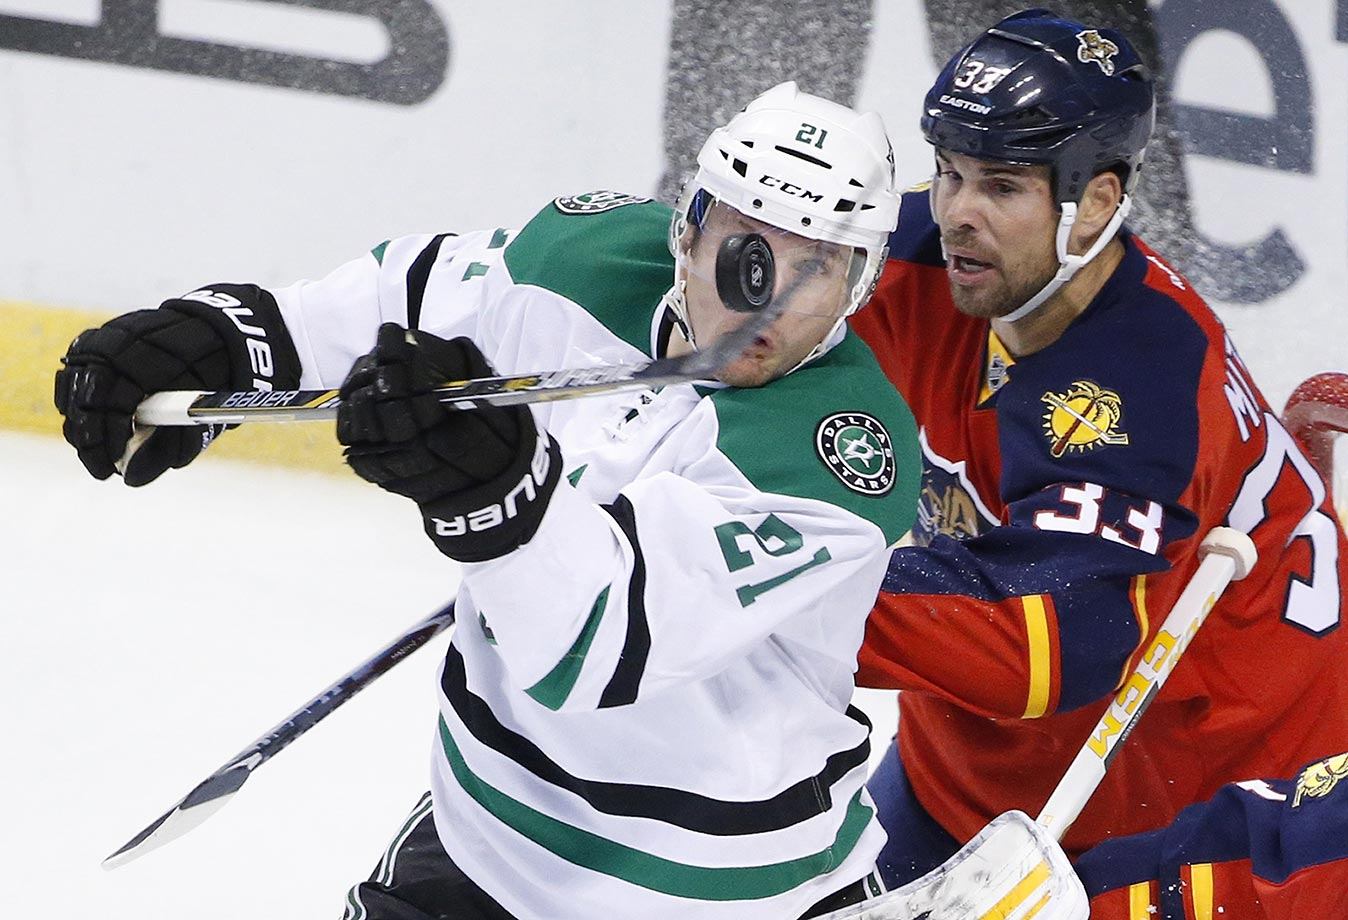 Antoine Roussel of the Dallas Stars bats the puck away from Willie Mitchell of the Florida Panthers.